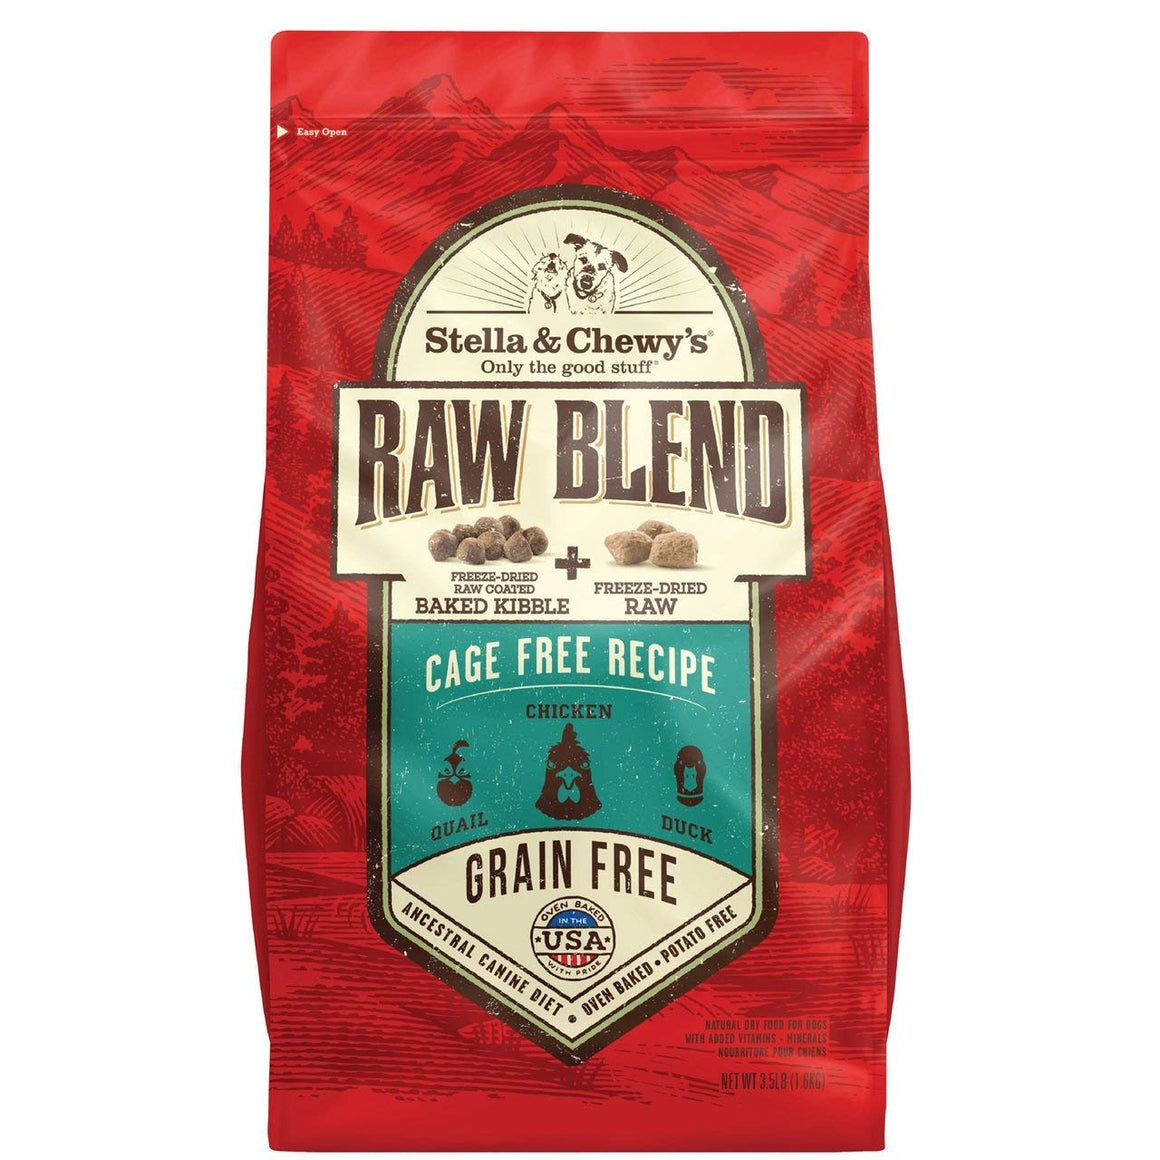 Nourriture pour chien Stella & Chewy's Cage-Free Raw Blend